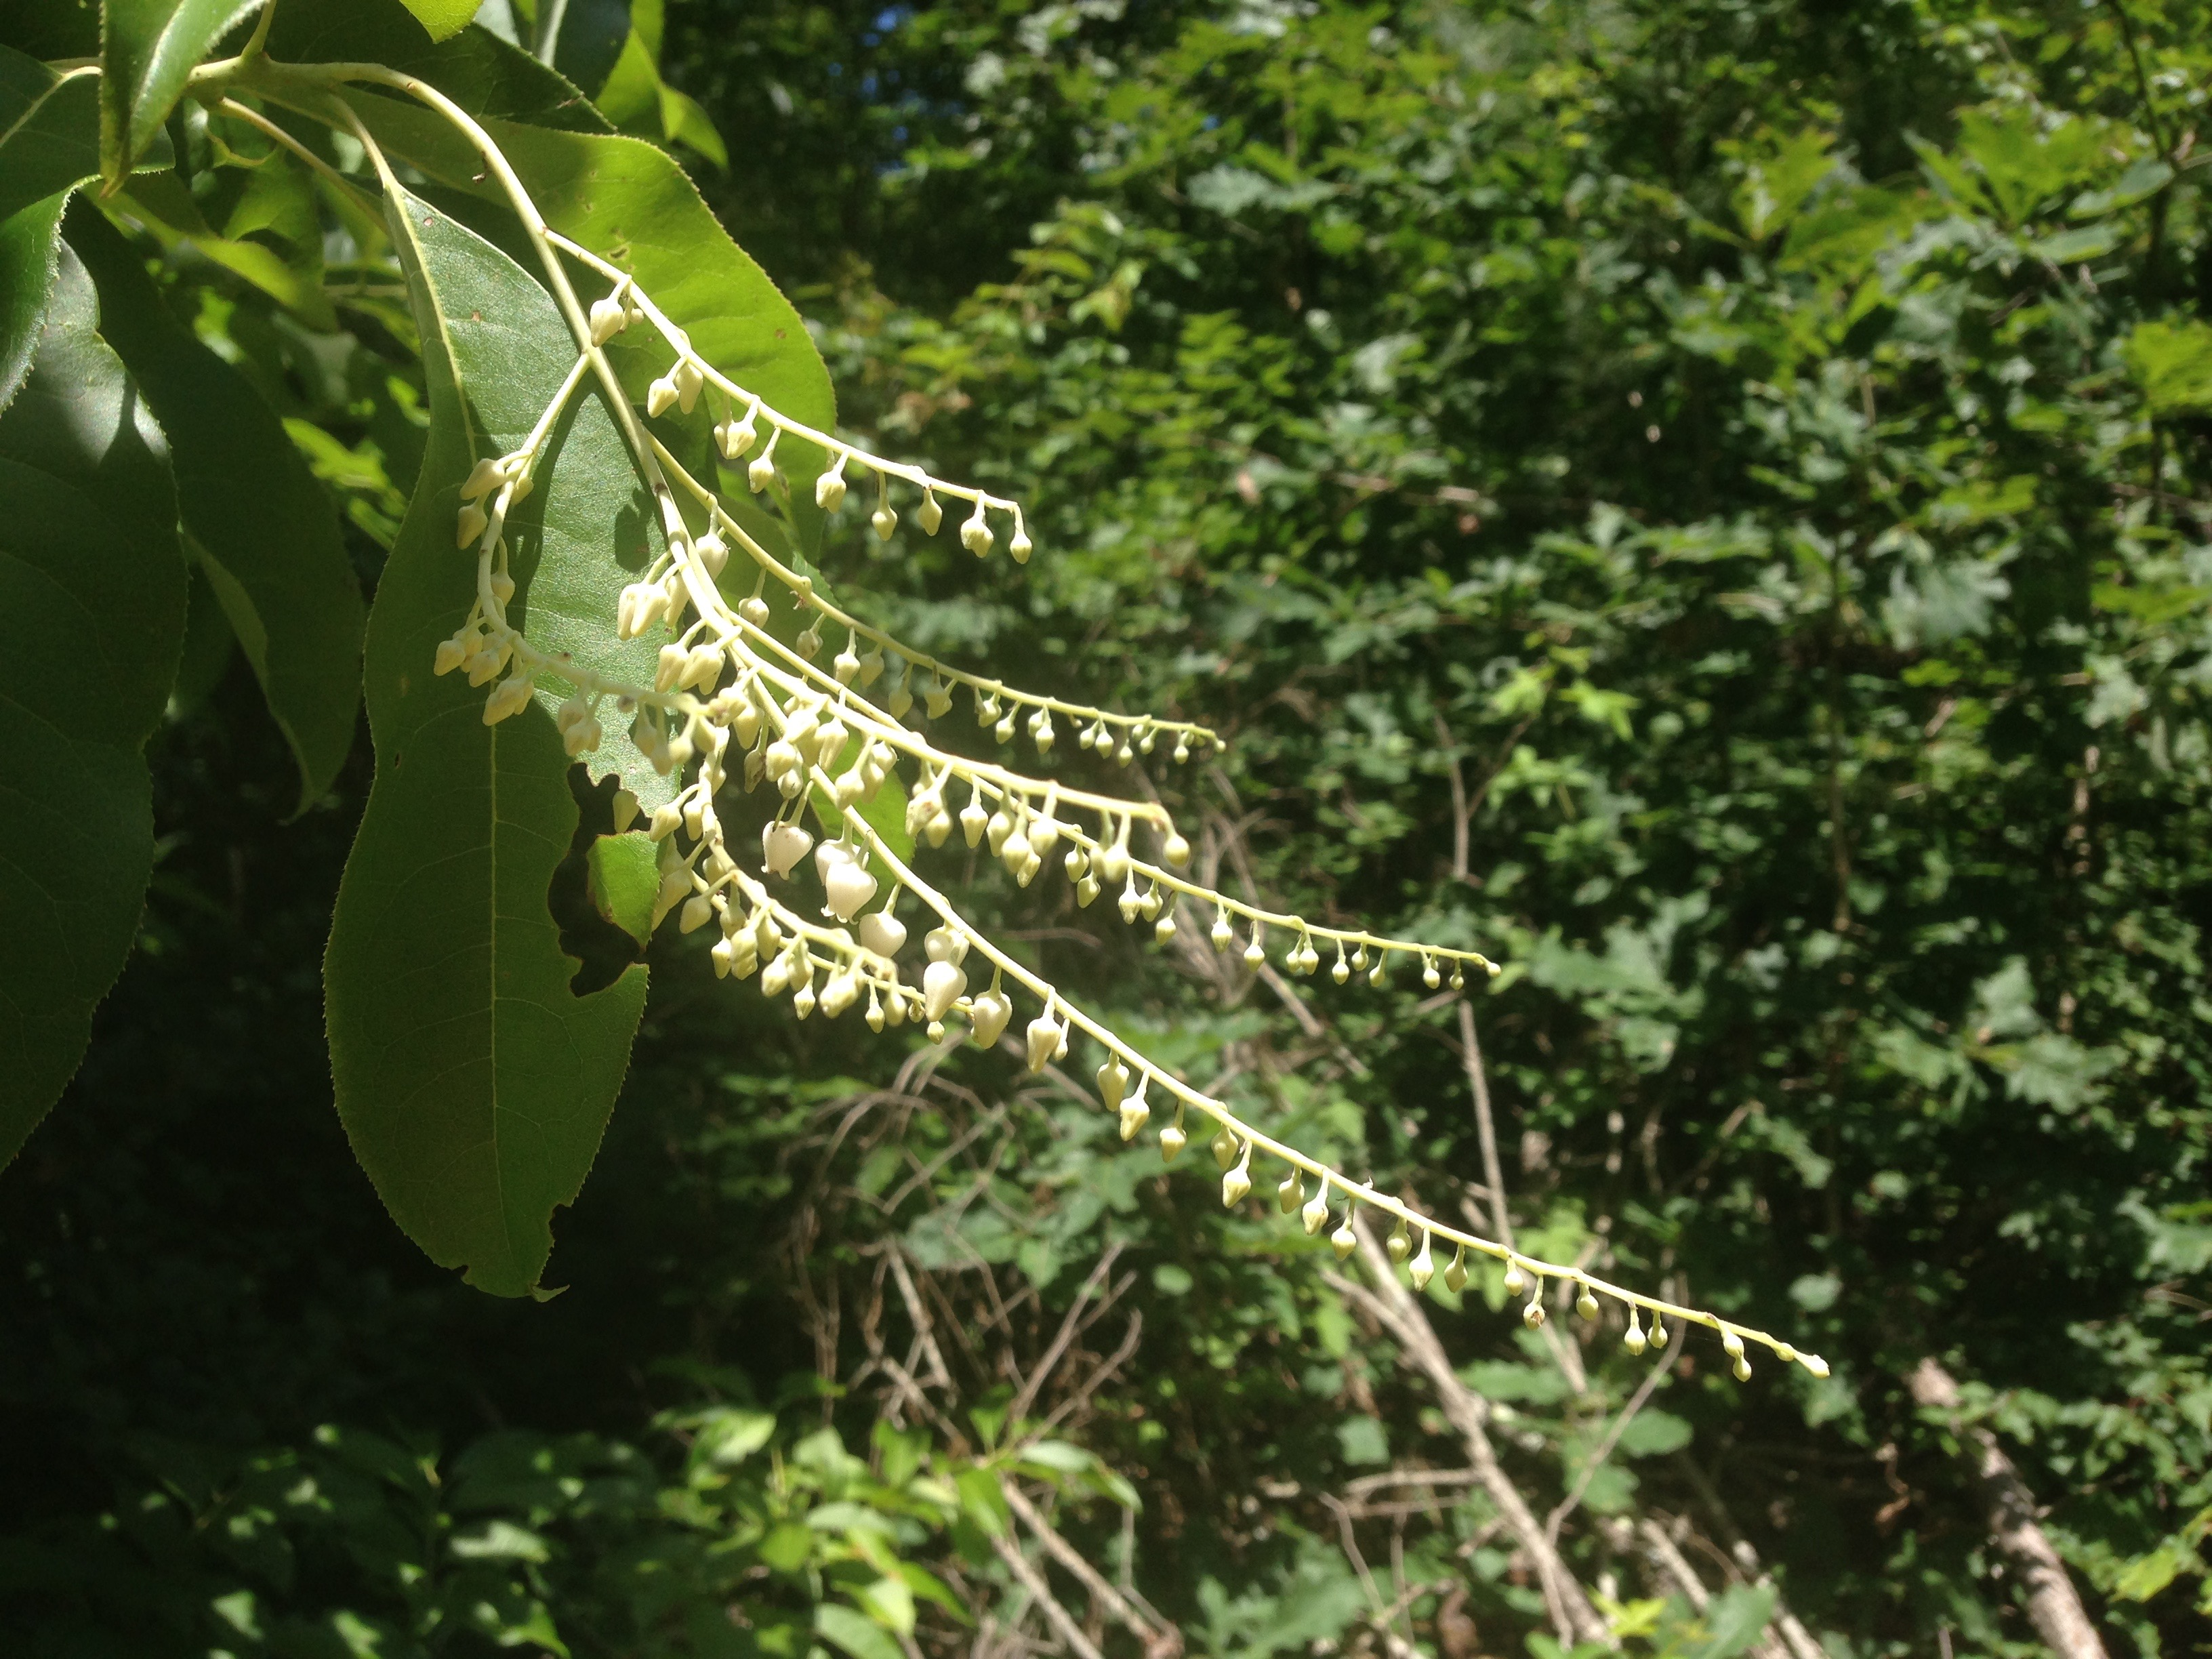 Sourwood tree in early flowering stage, June 29, 2016